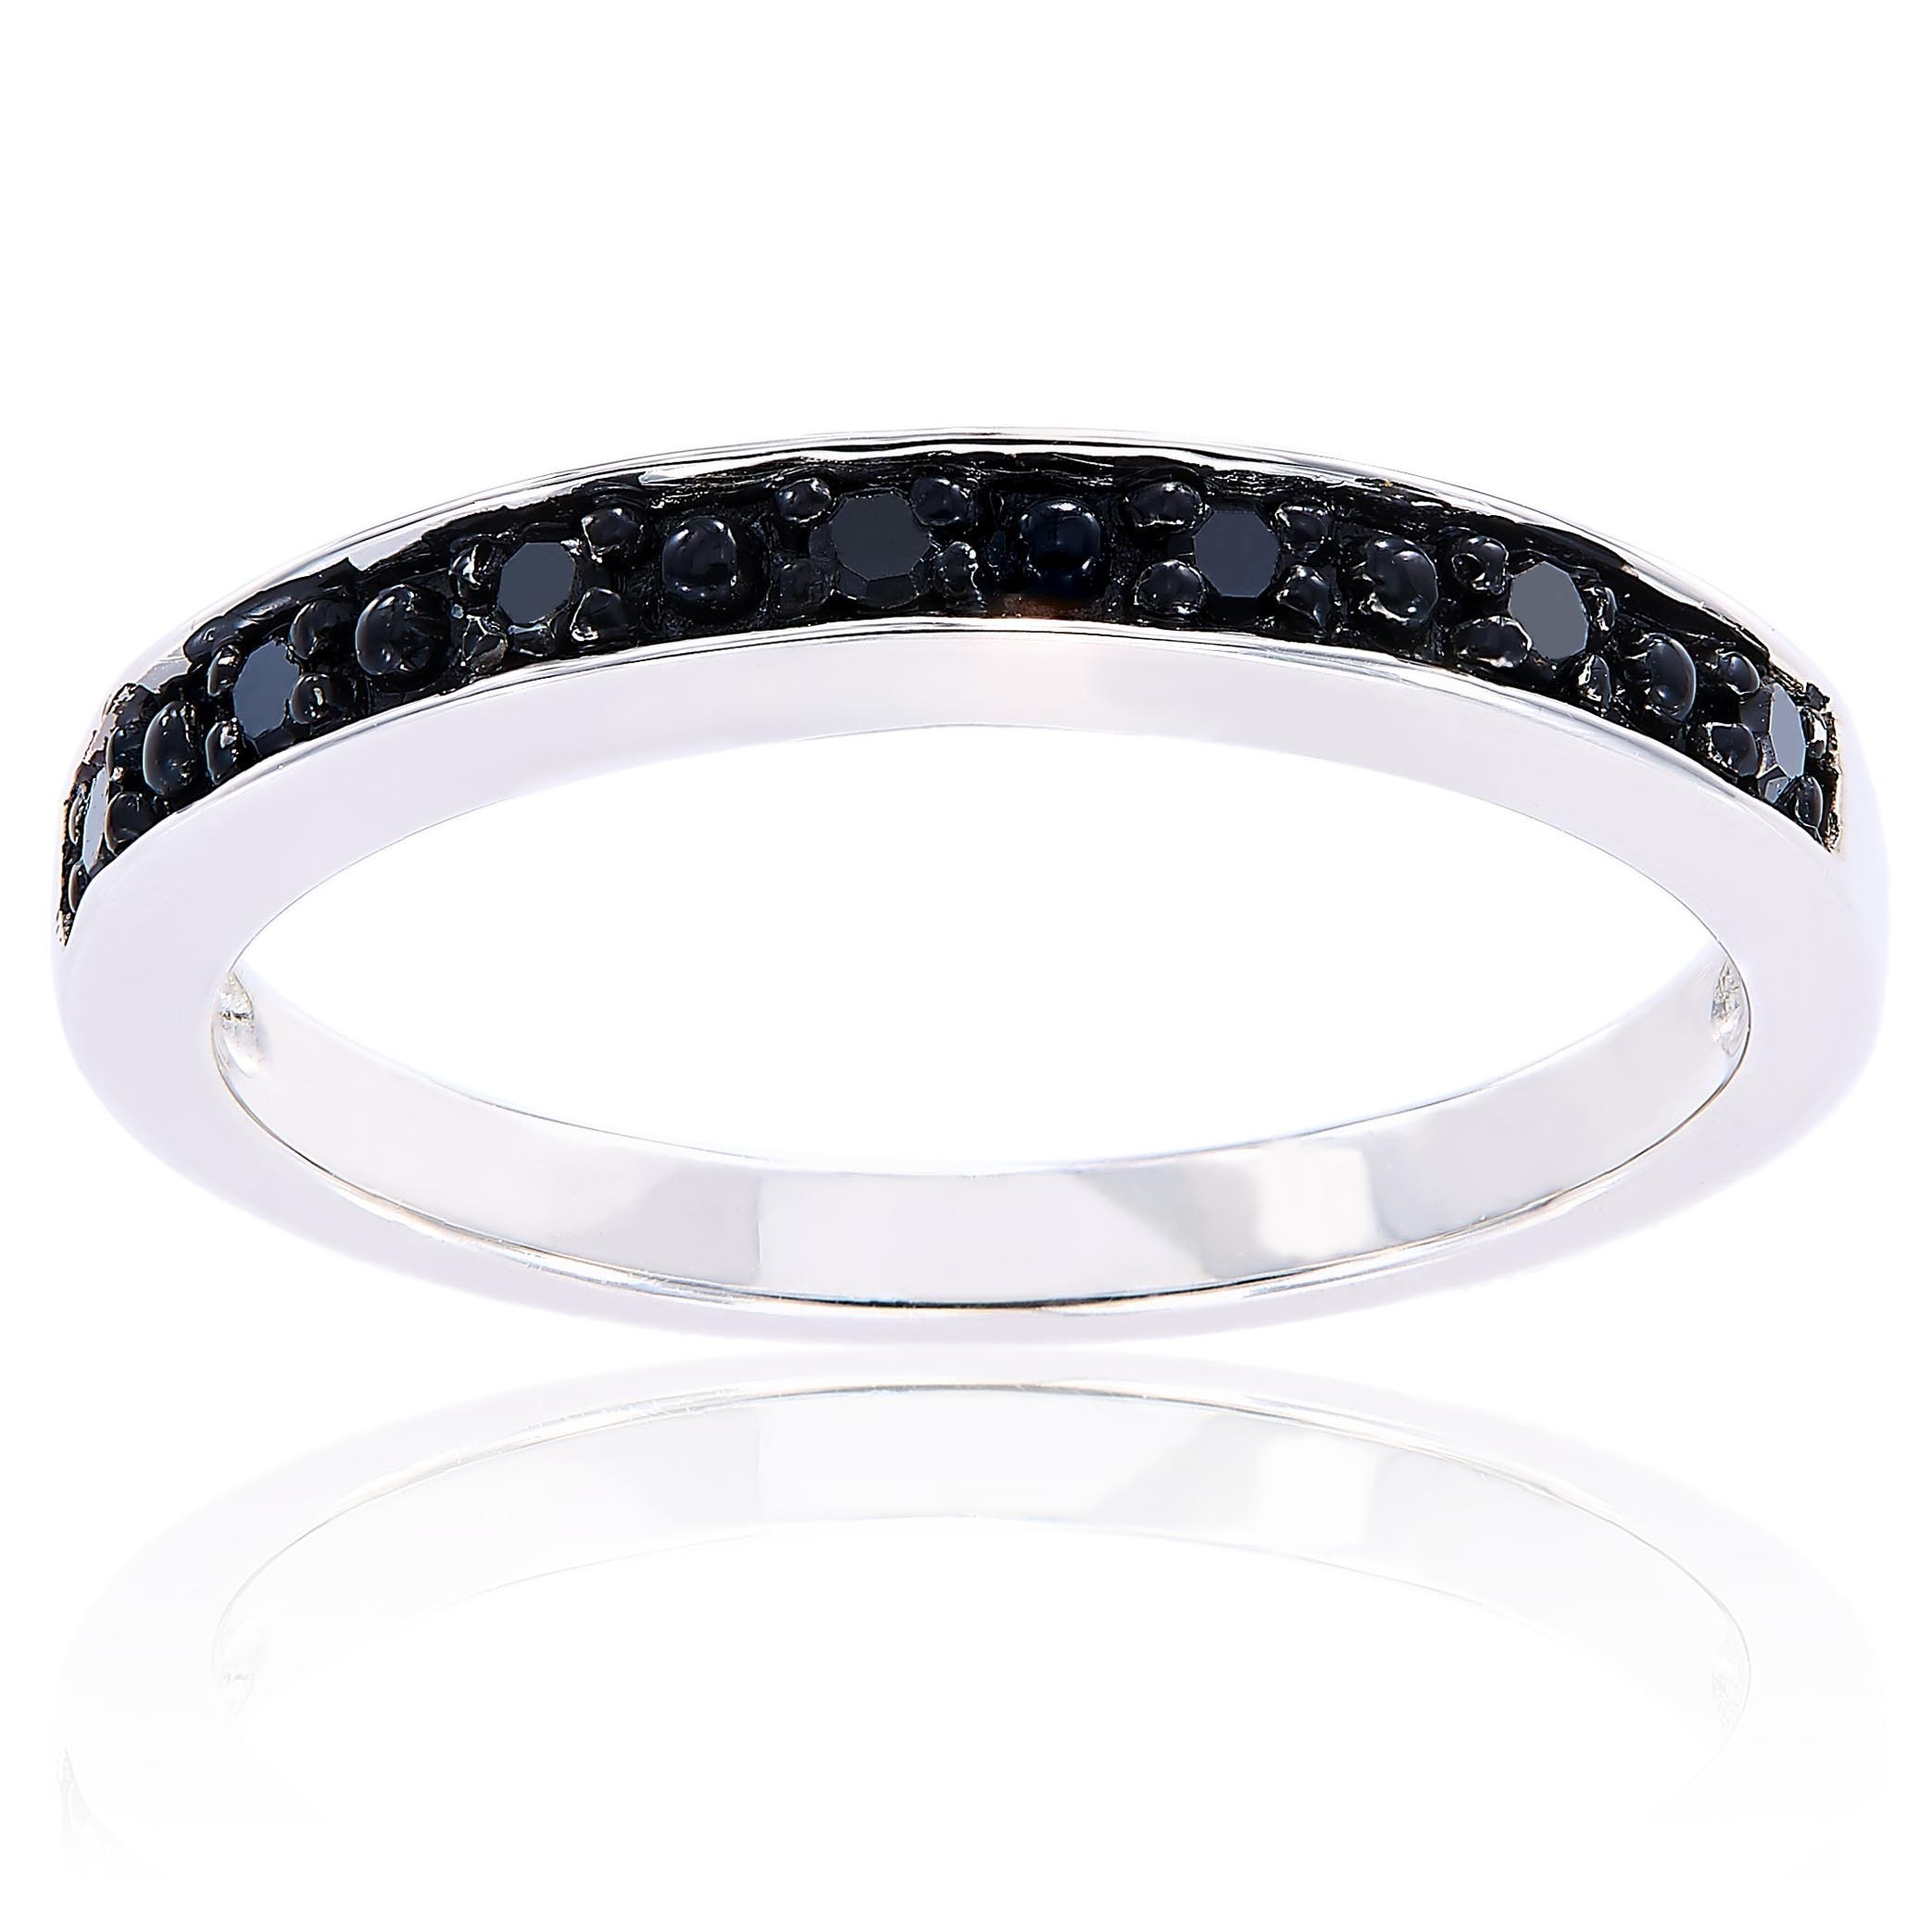 Miadora Sterling Silver Black Diamond Stackable Anniversary Wedding Band  Ring With Regard To 2020 Enhanced Black And White Diamond Vintage Style Anniversary Bands In Sterling Silver (Gallery 5 of 25)